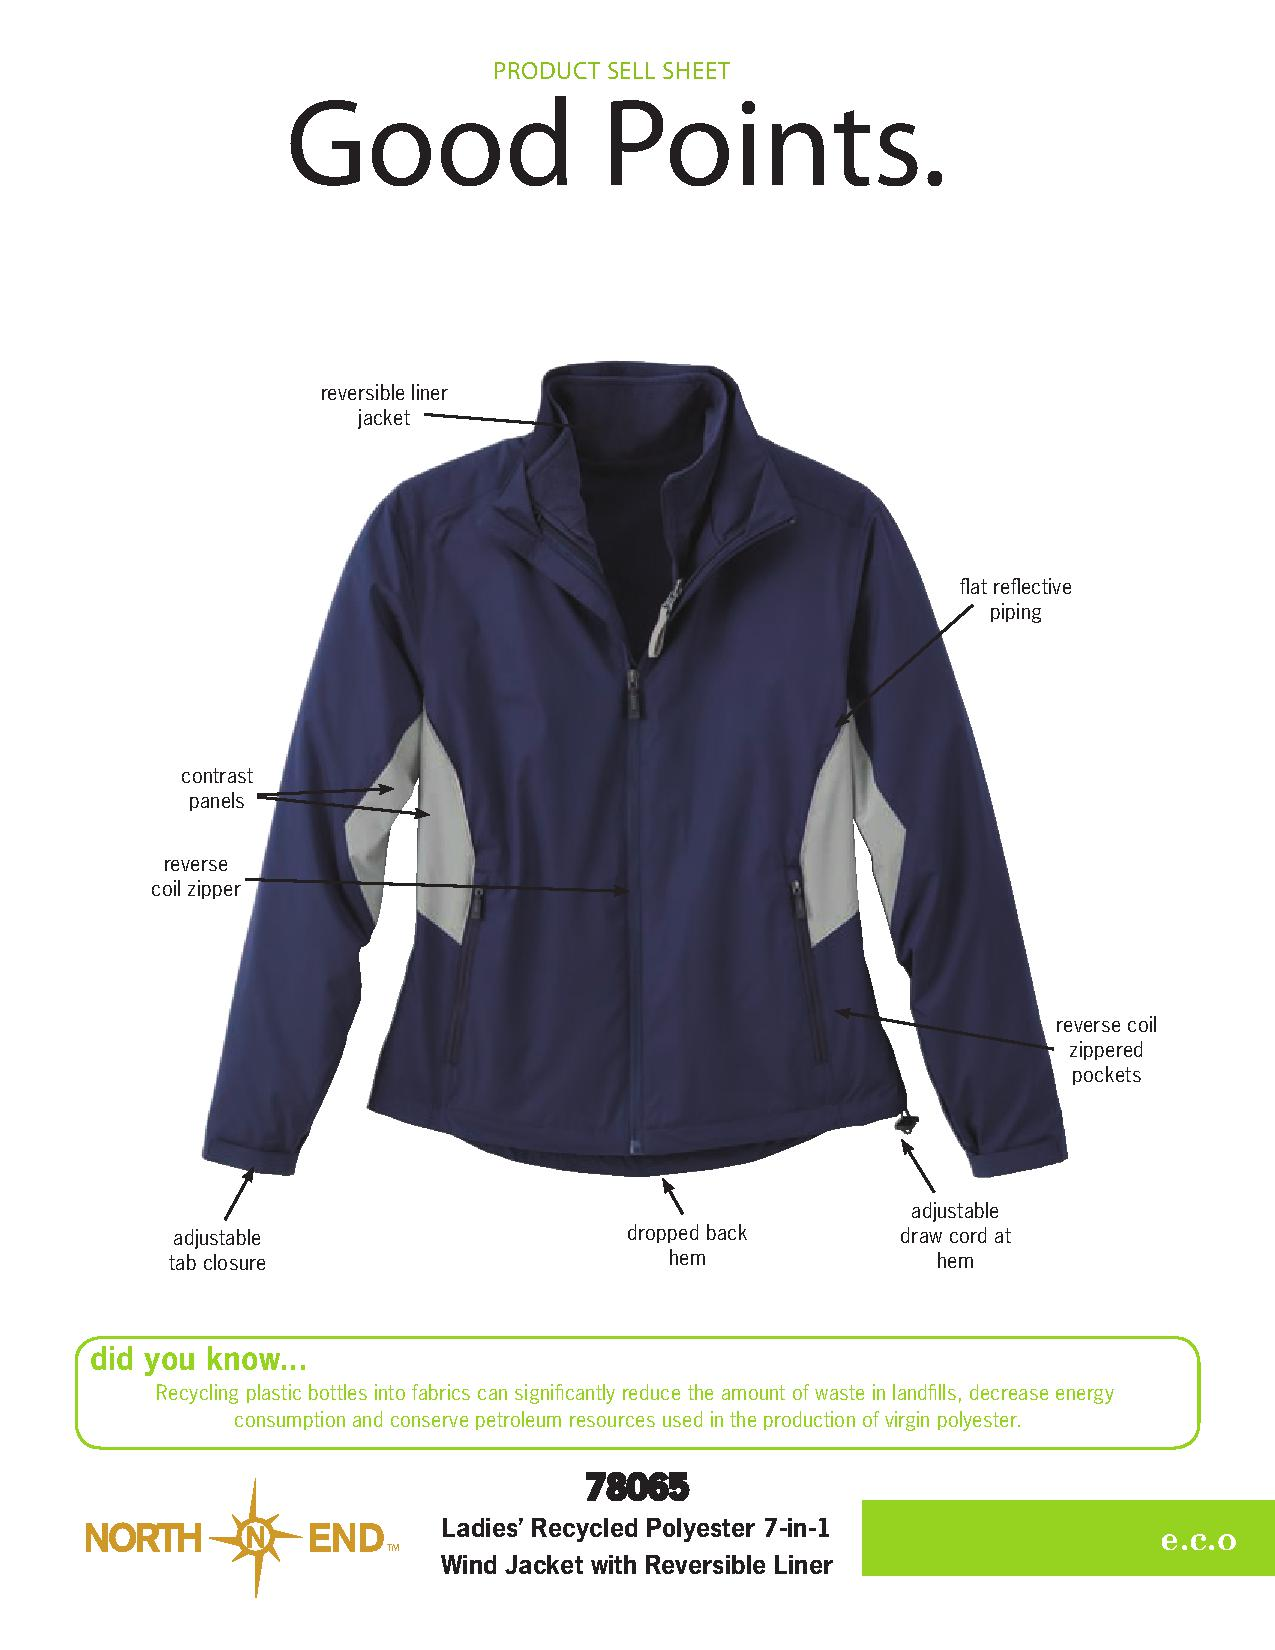 Ash City e.c.o Outerwear 78065 - Ladies' Recycled Polyester 7-In-1 Wind Jacket With Reversible Liner